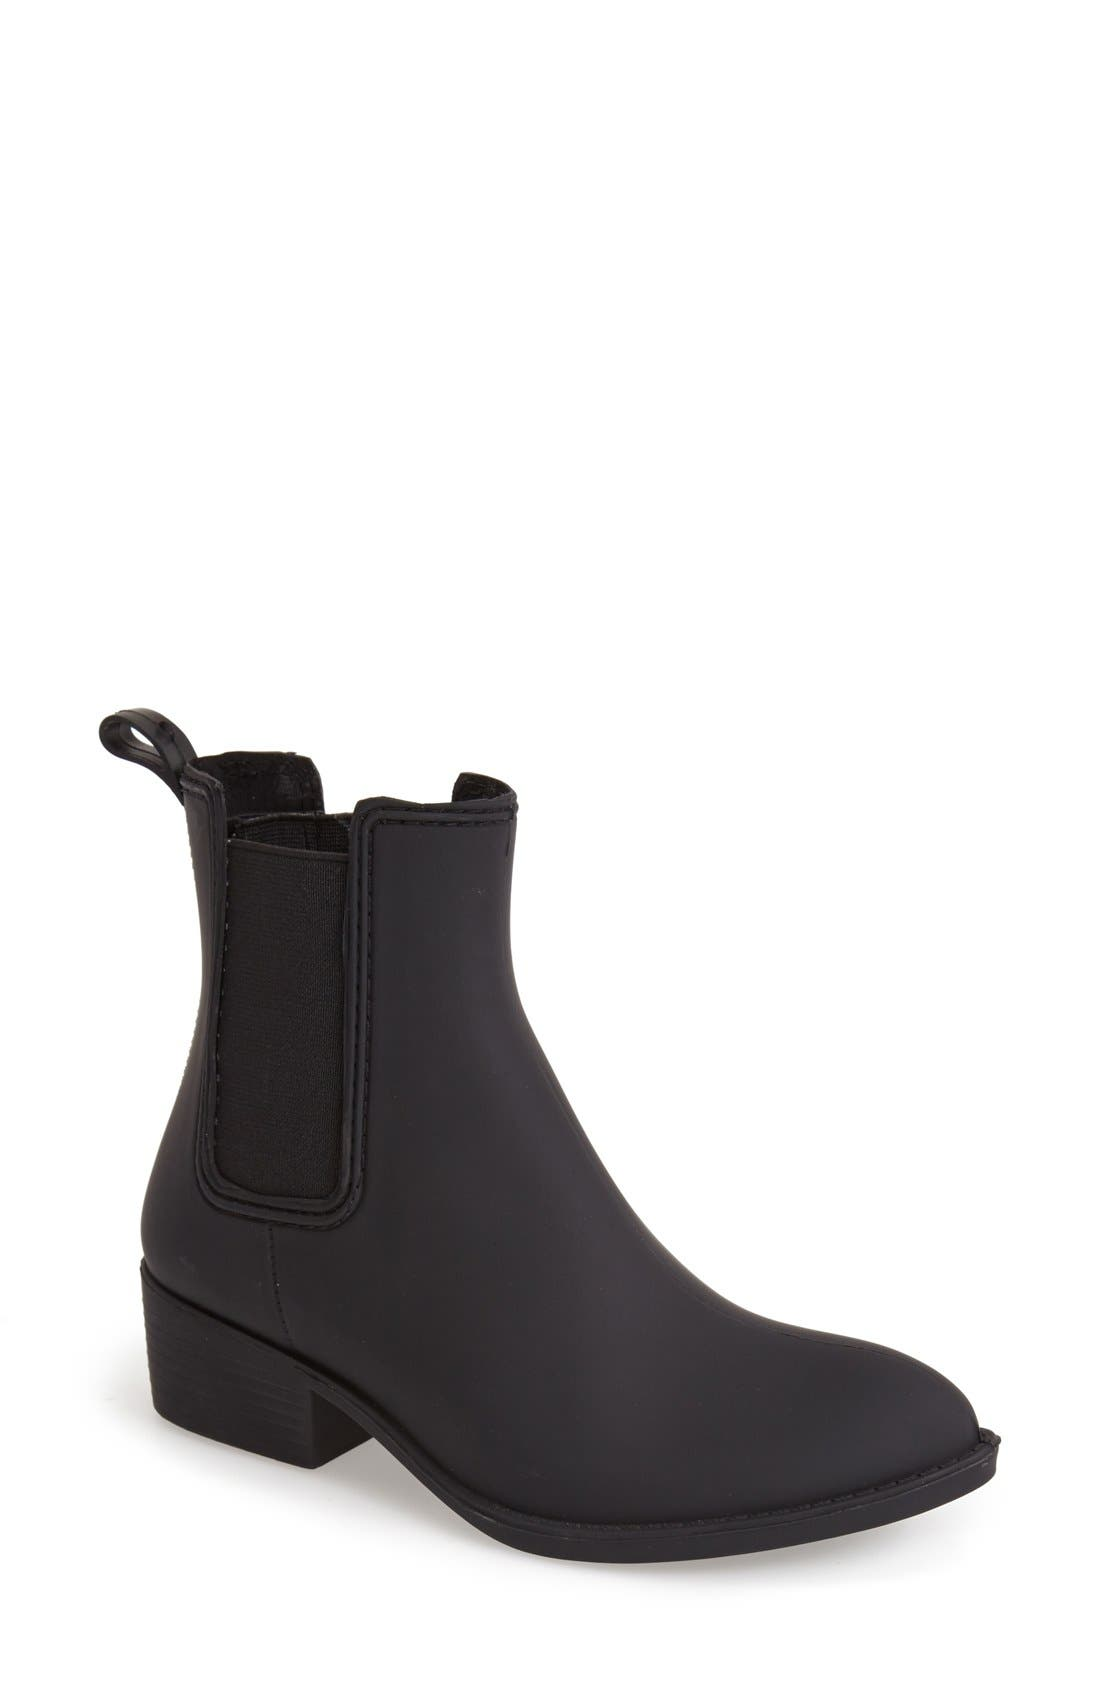 JEFFREY CAMPBELL 'Stormy' Rain Boot